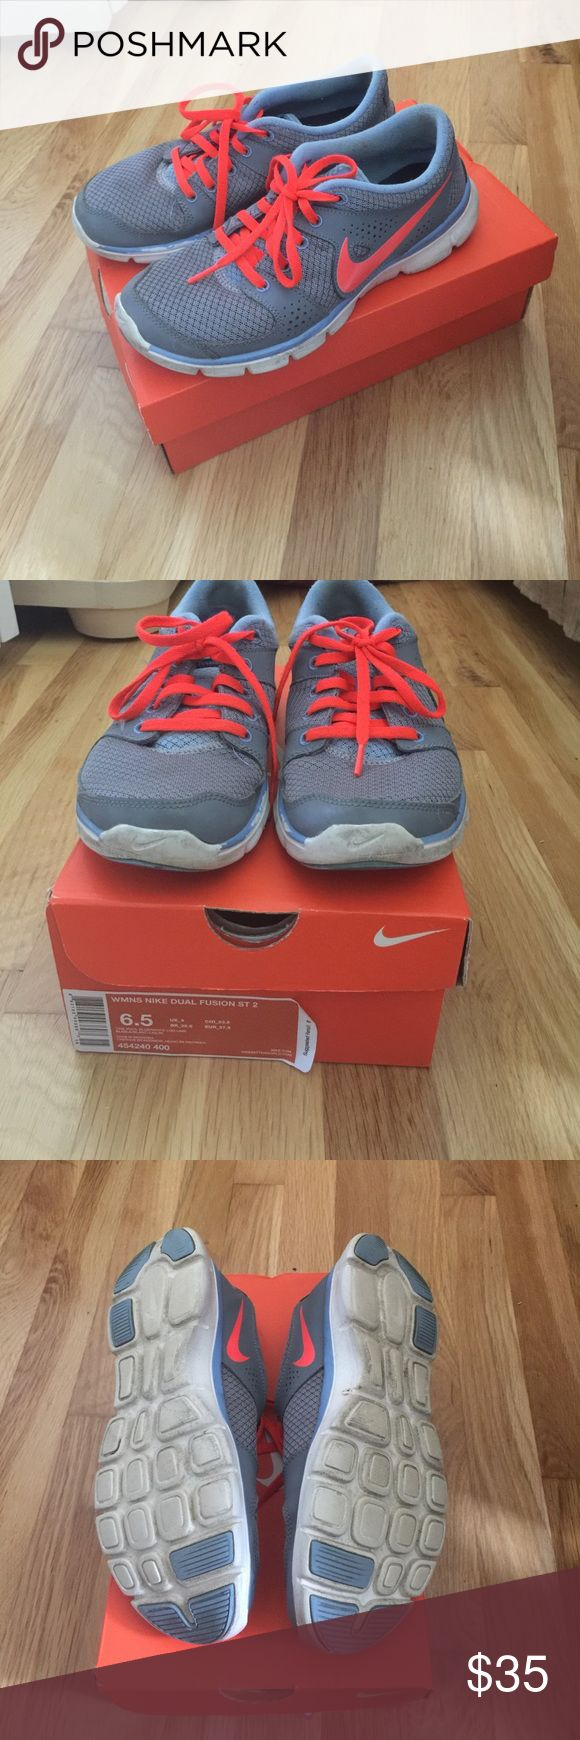 Nike Dual Fusion St 2. Firm price Can send box if needed Nike Shoes Athletic Shoes